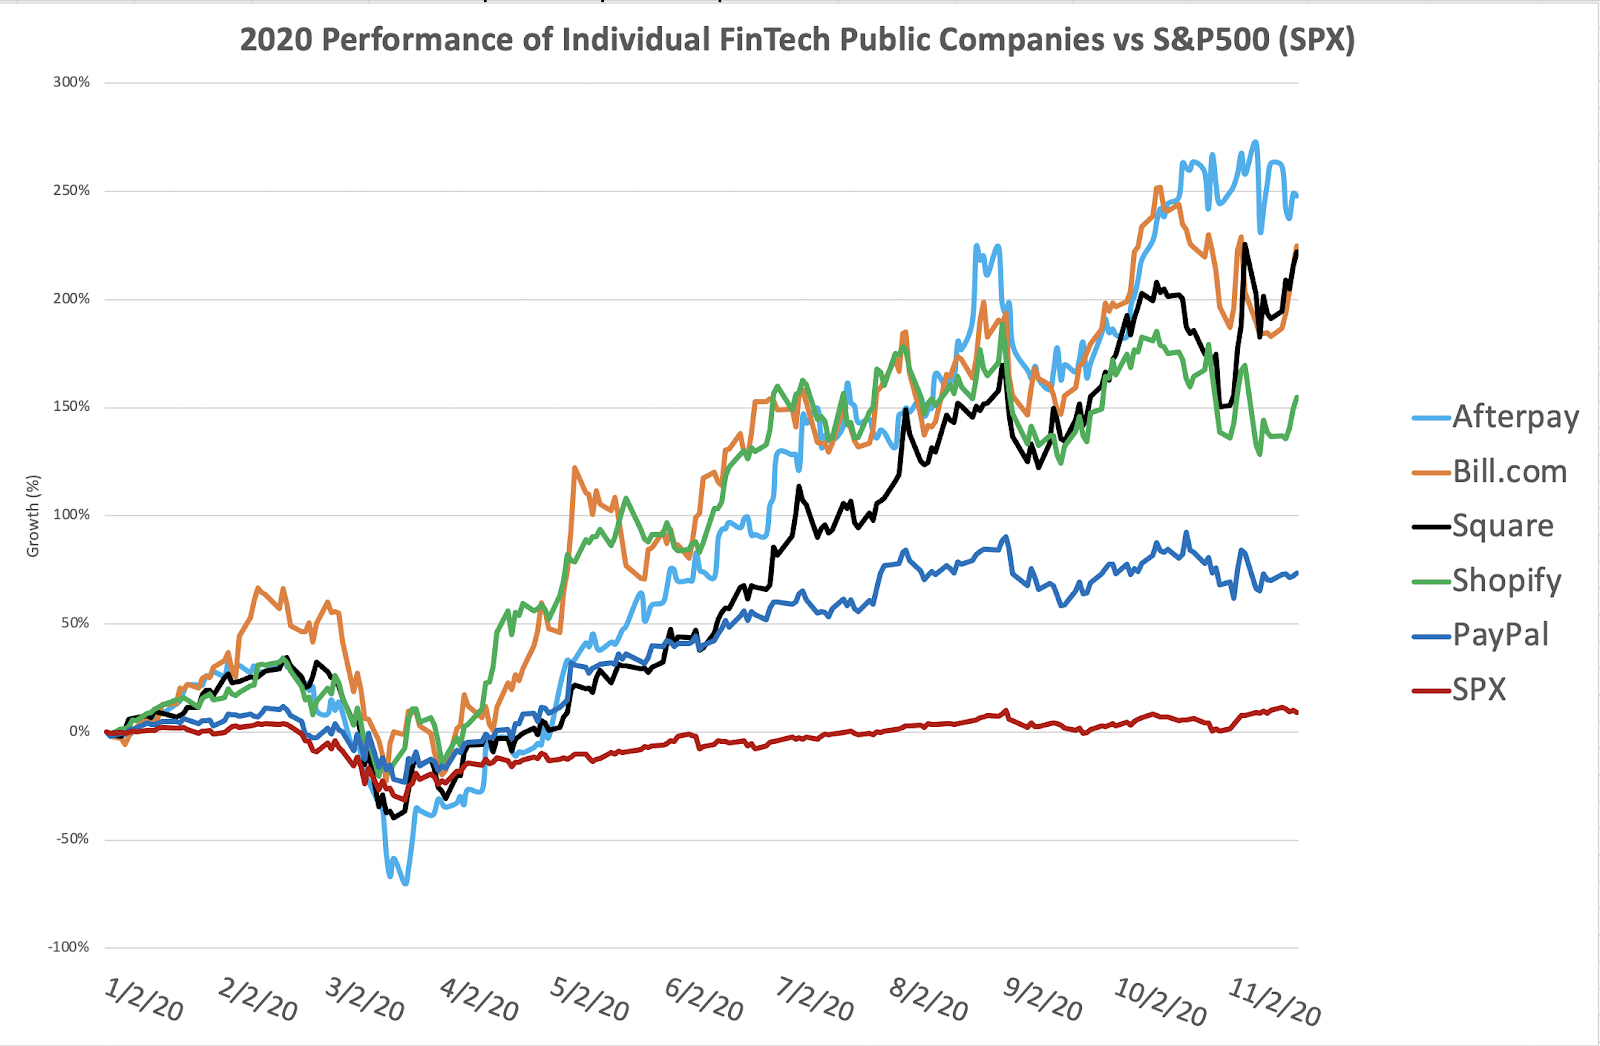 2020 performance of individual fintech companies vs. SPX